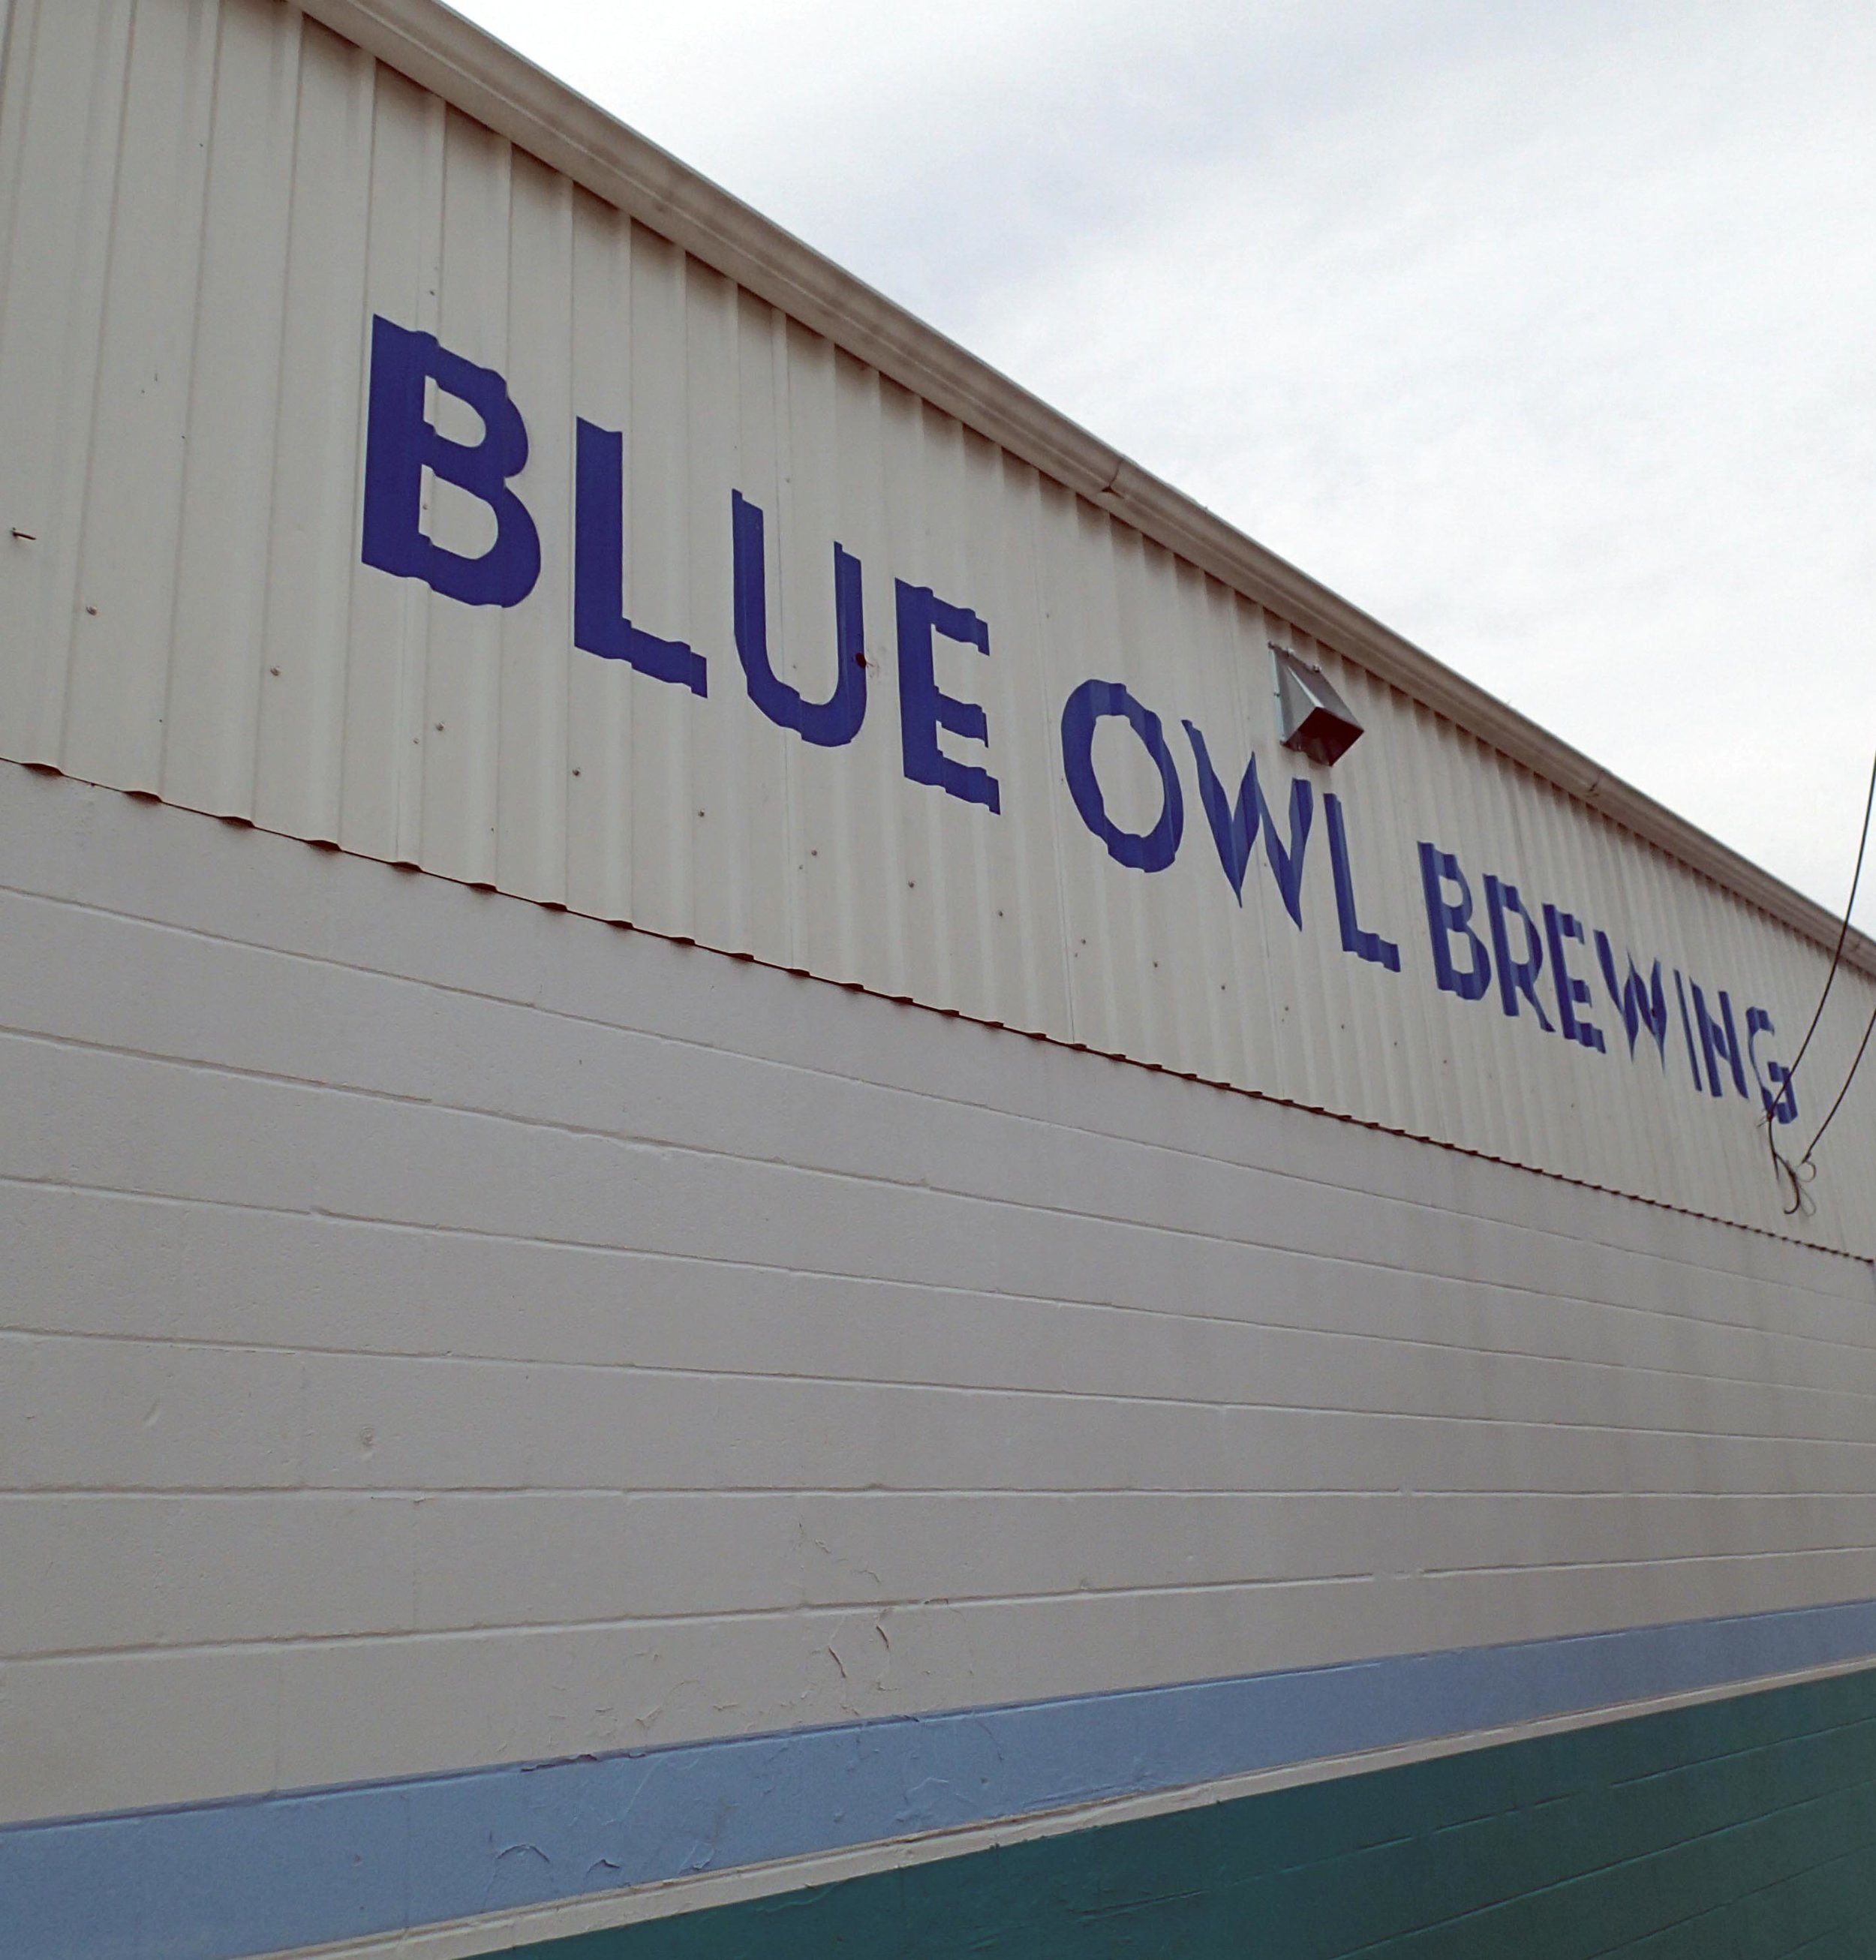 Blue Owl Brewing.jpg